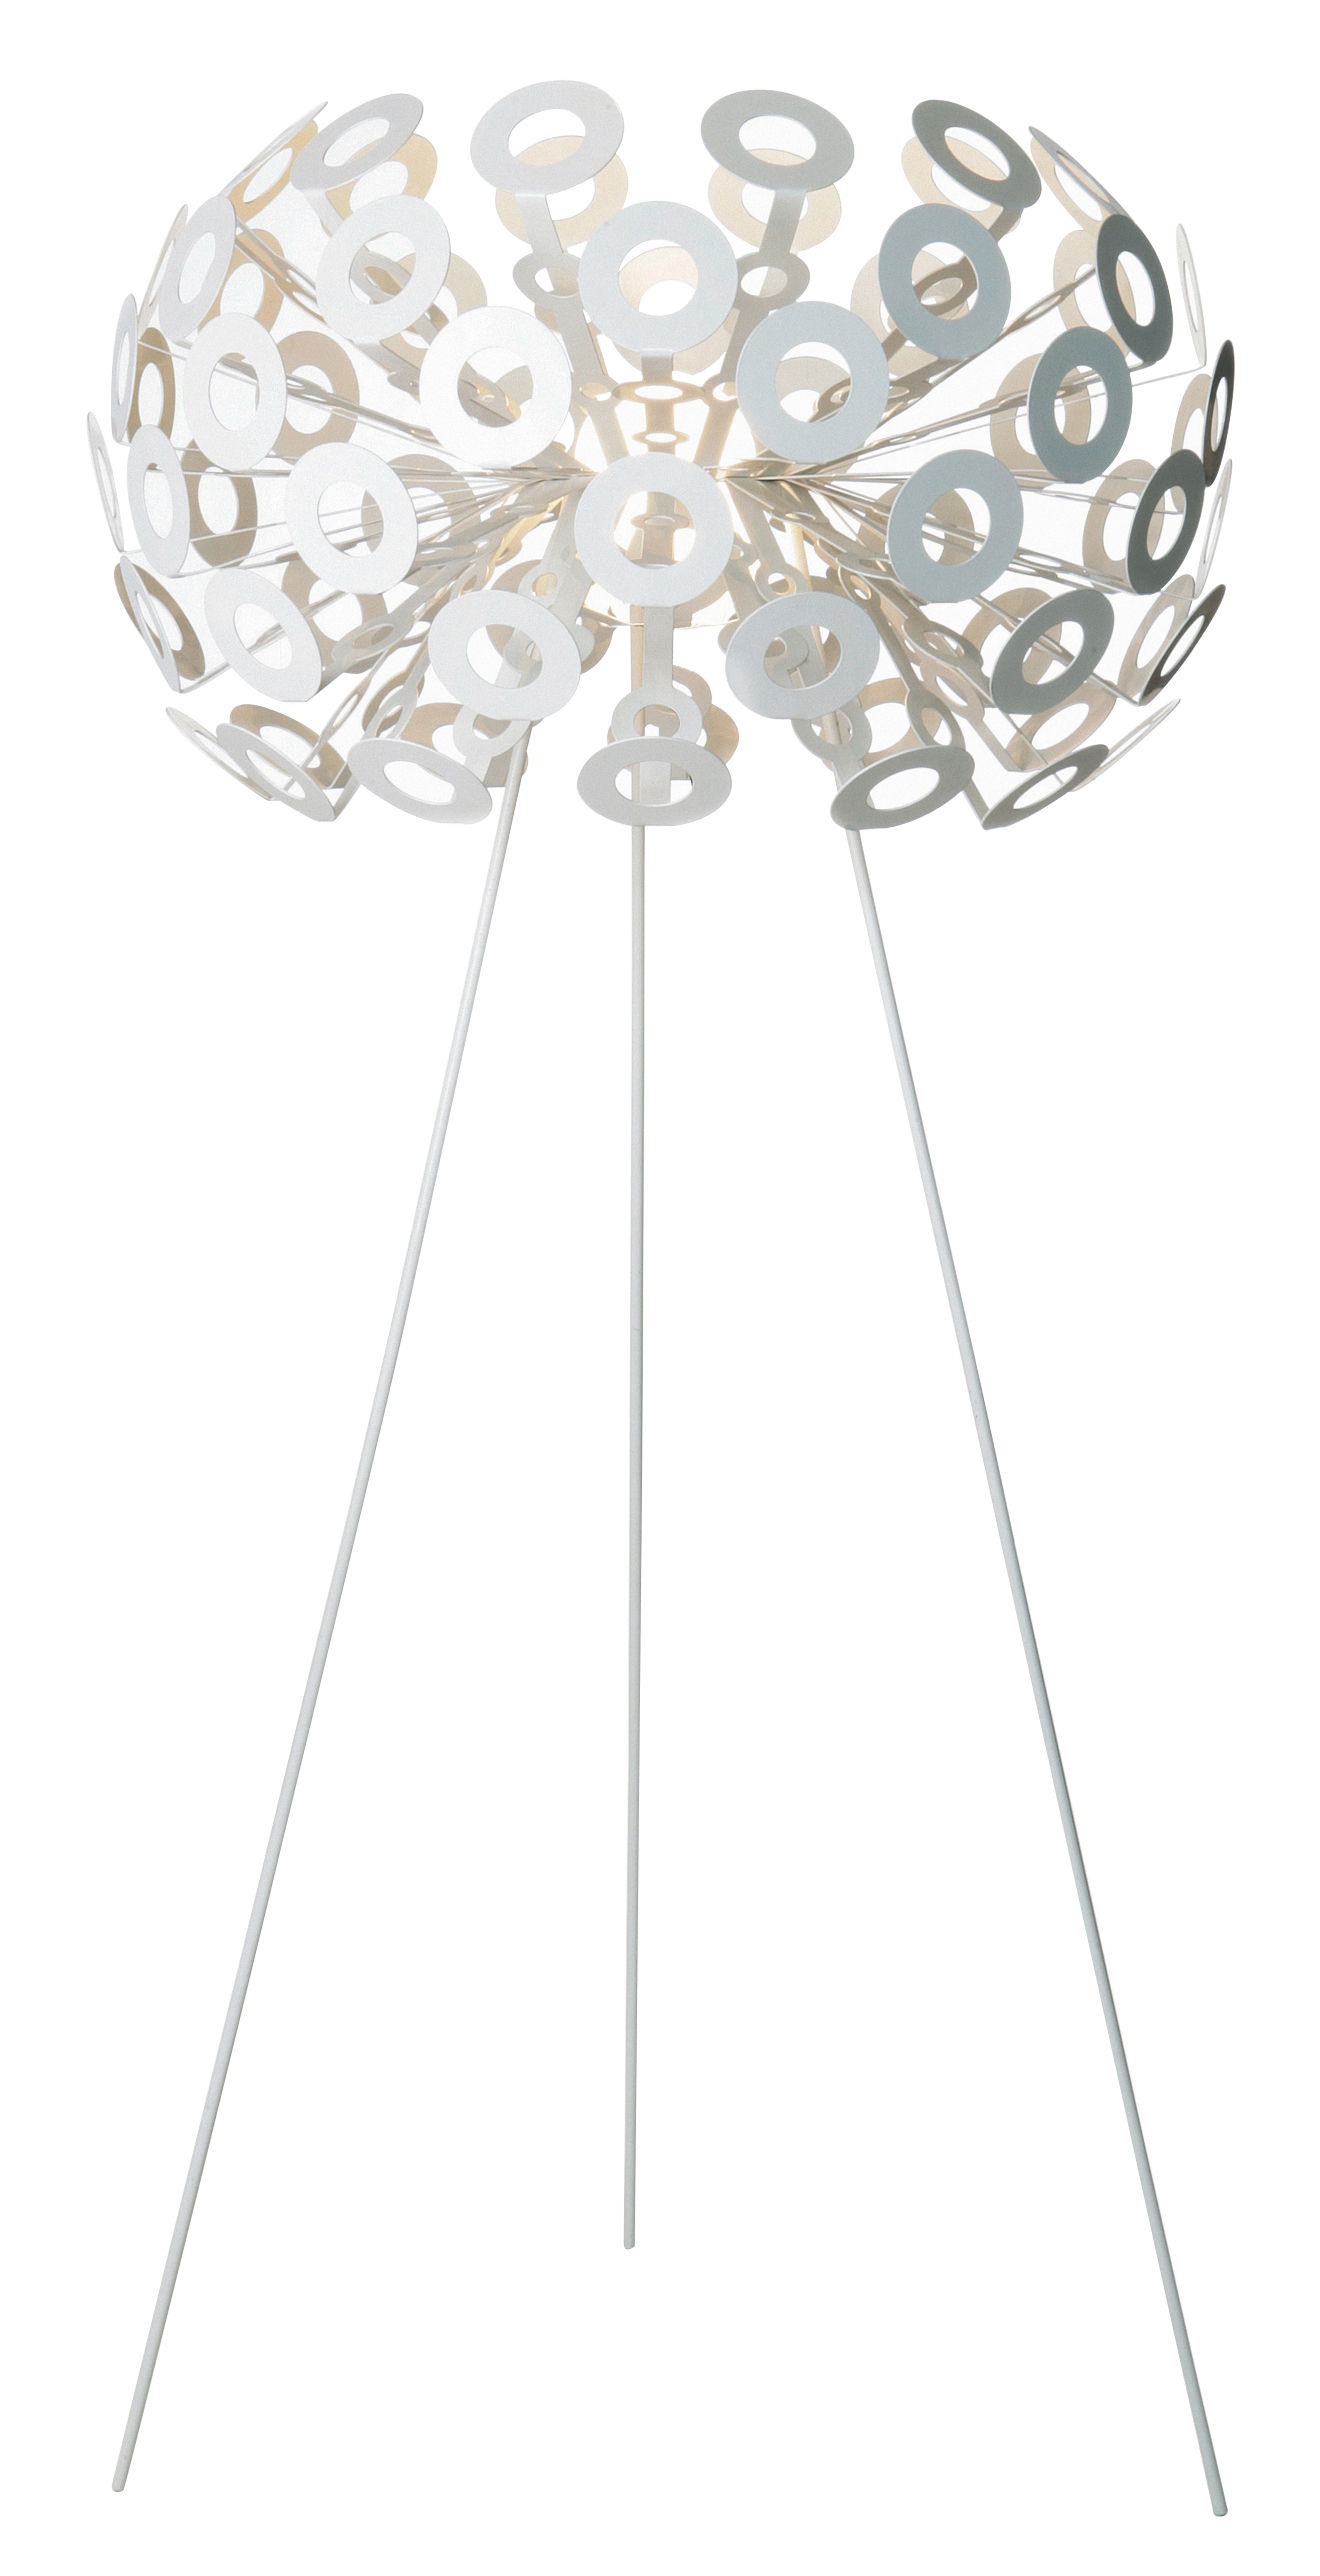 Lighting - Floor lamps - Dandelion Floor lamp by Moooi - White - Painted steel